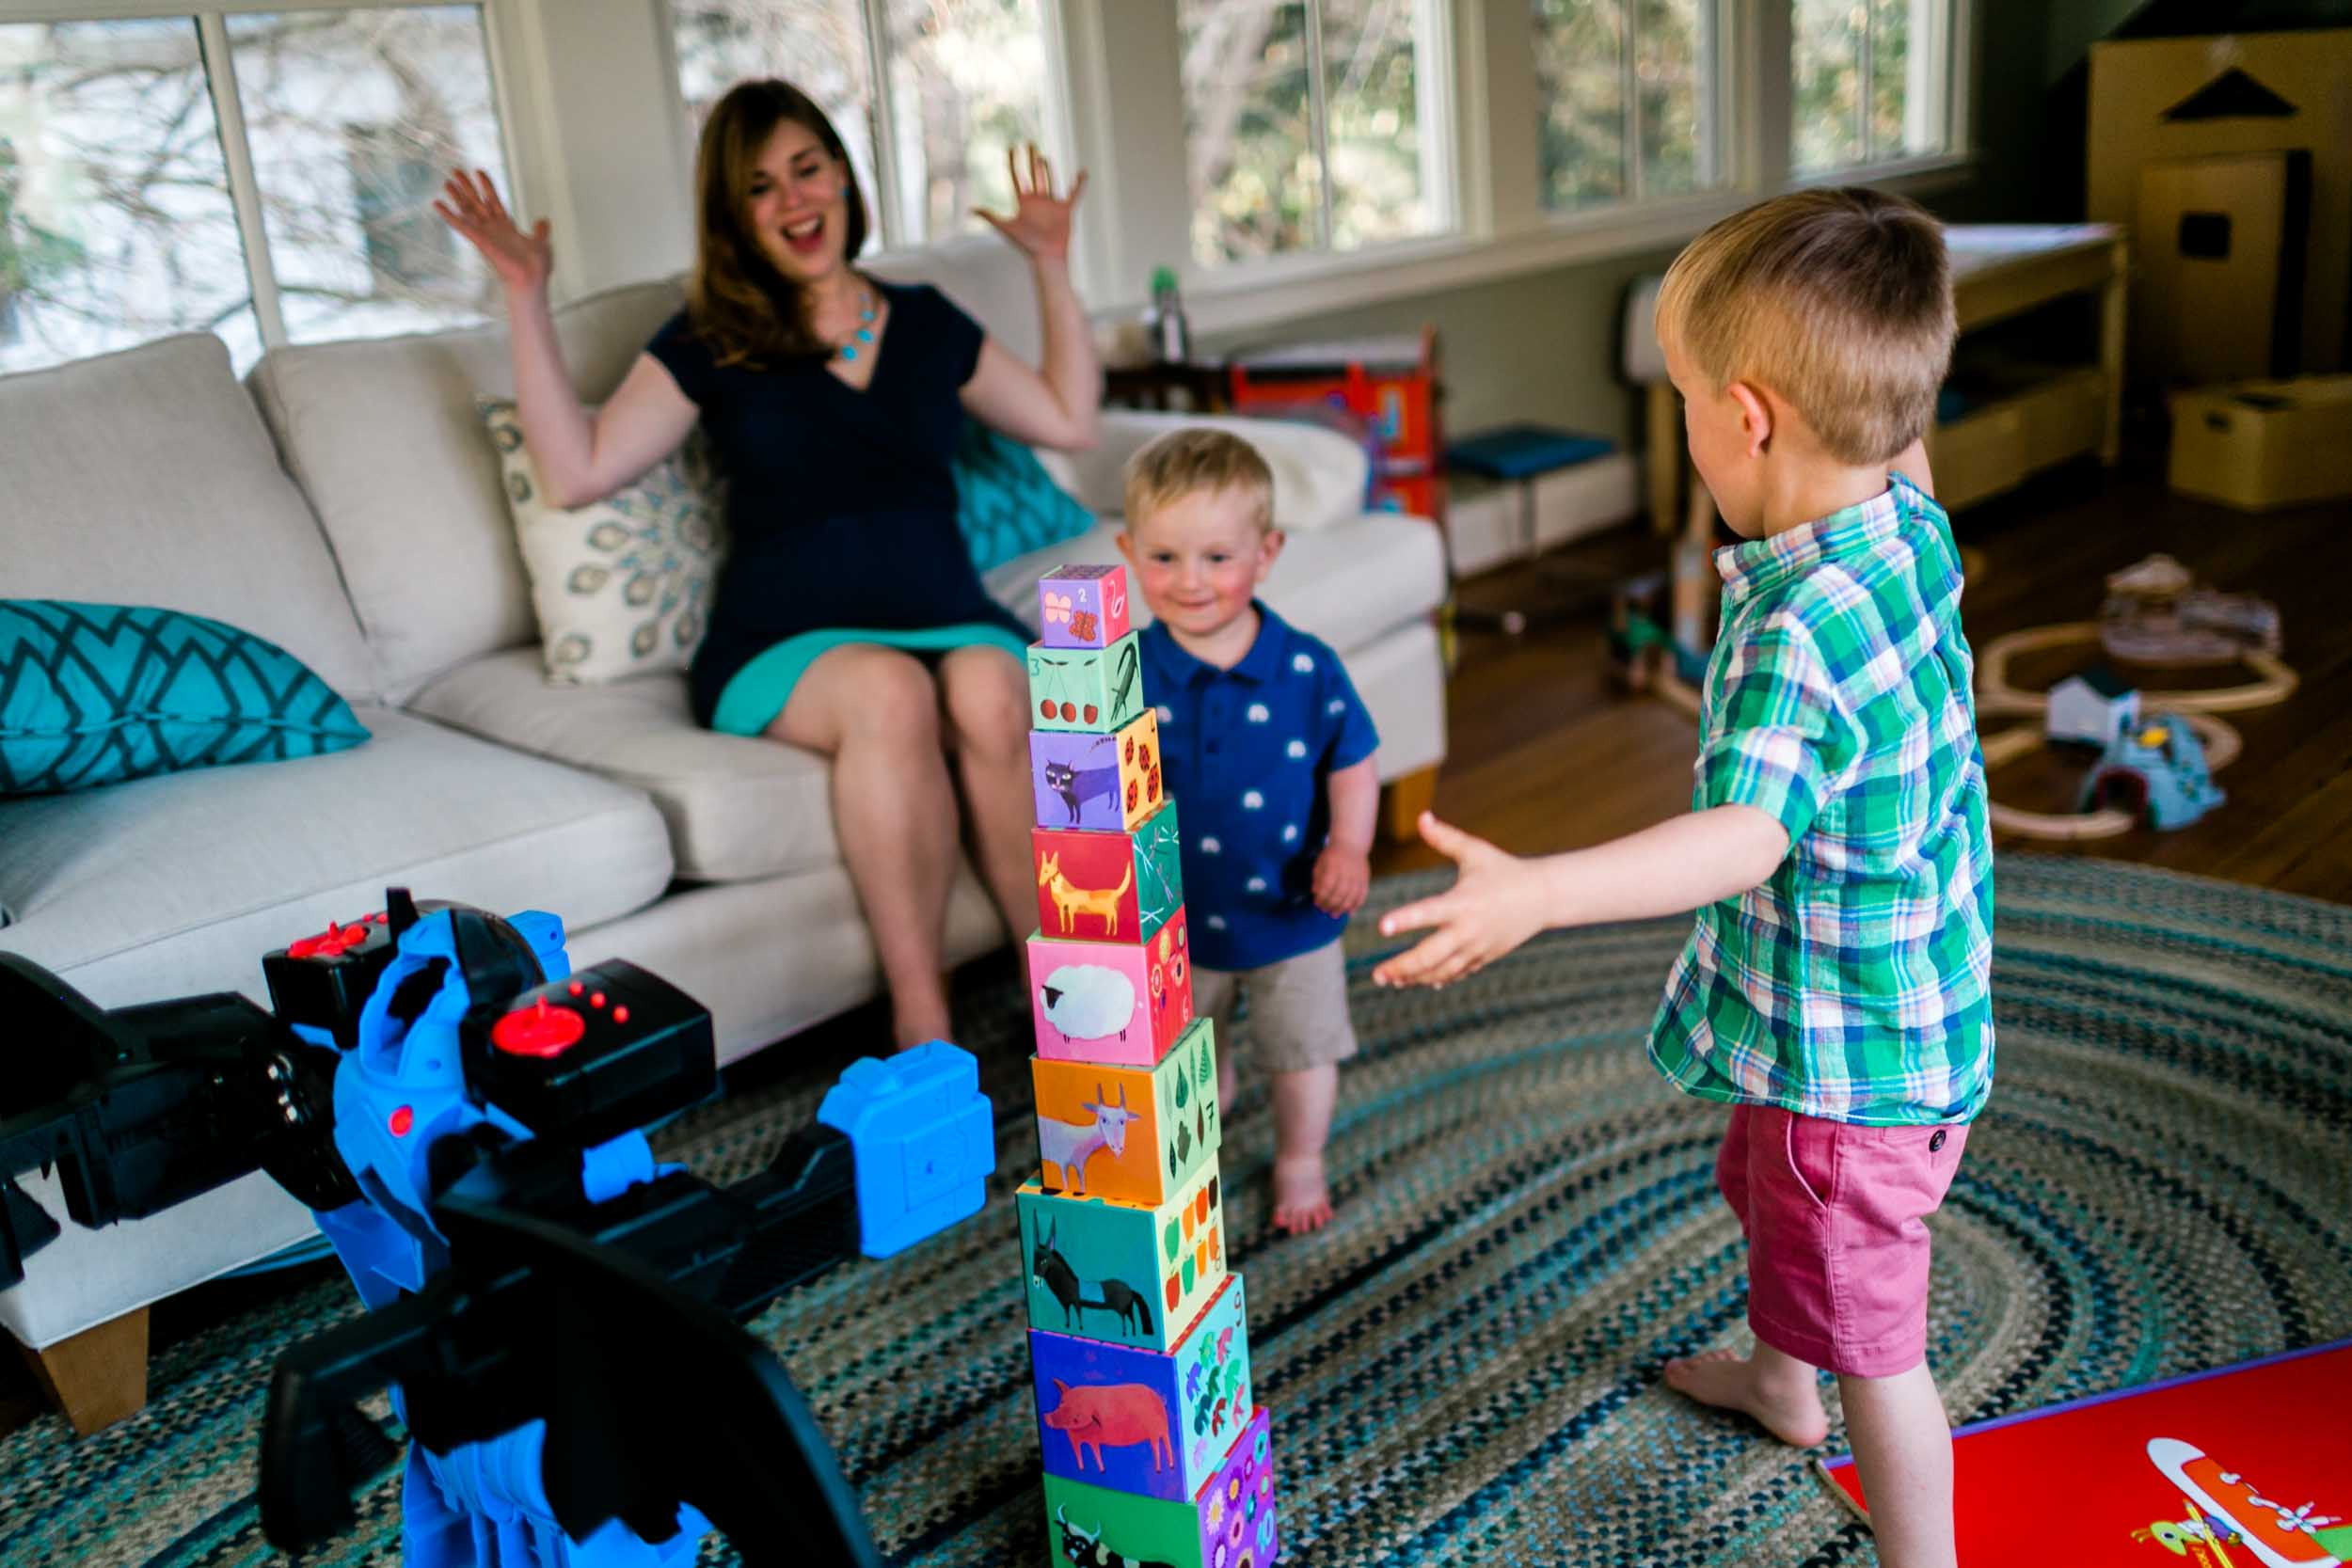 Durham Photographer | By G. Lin Photography | Children playing with blocks